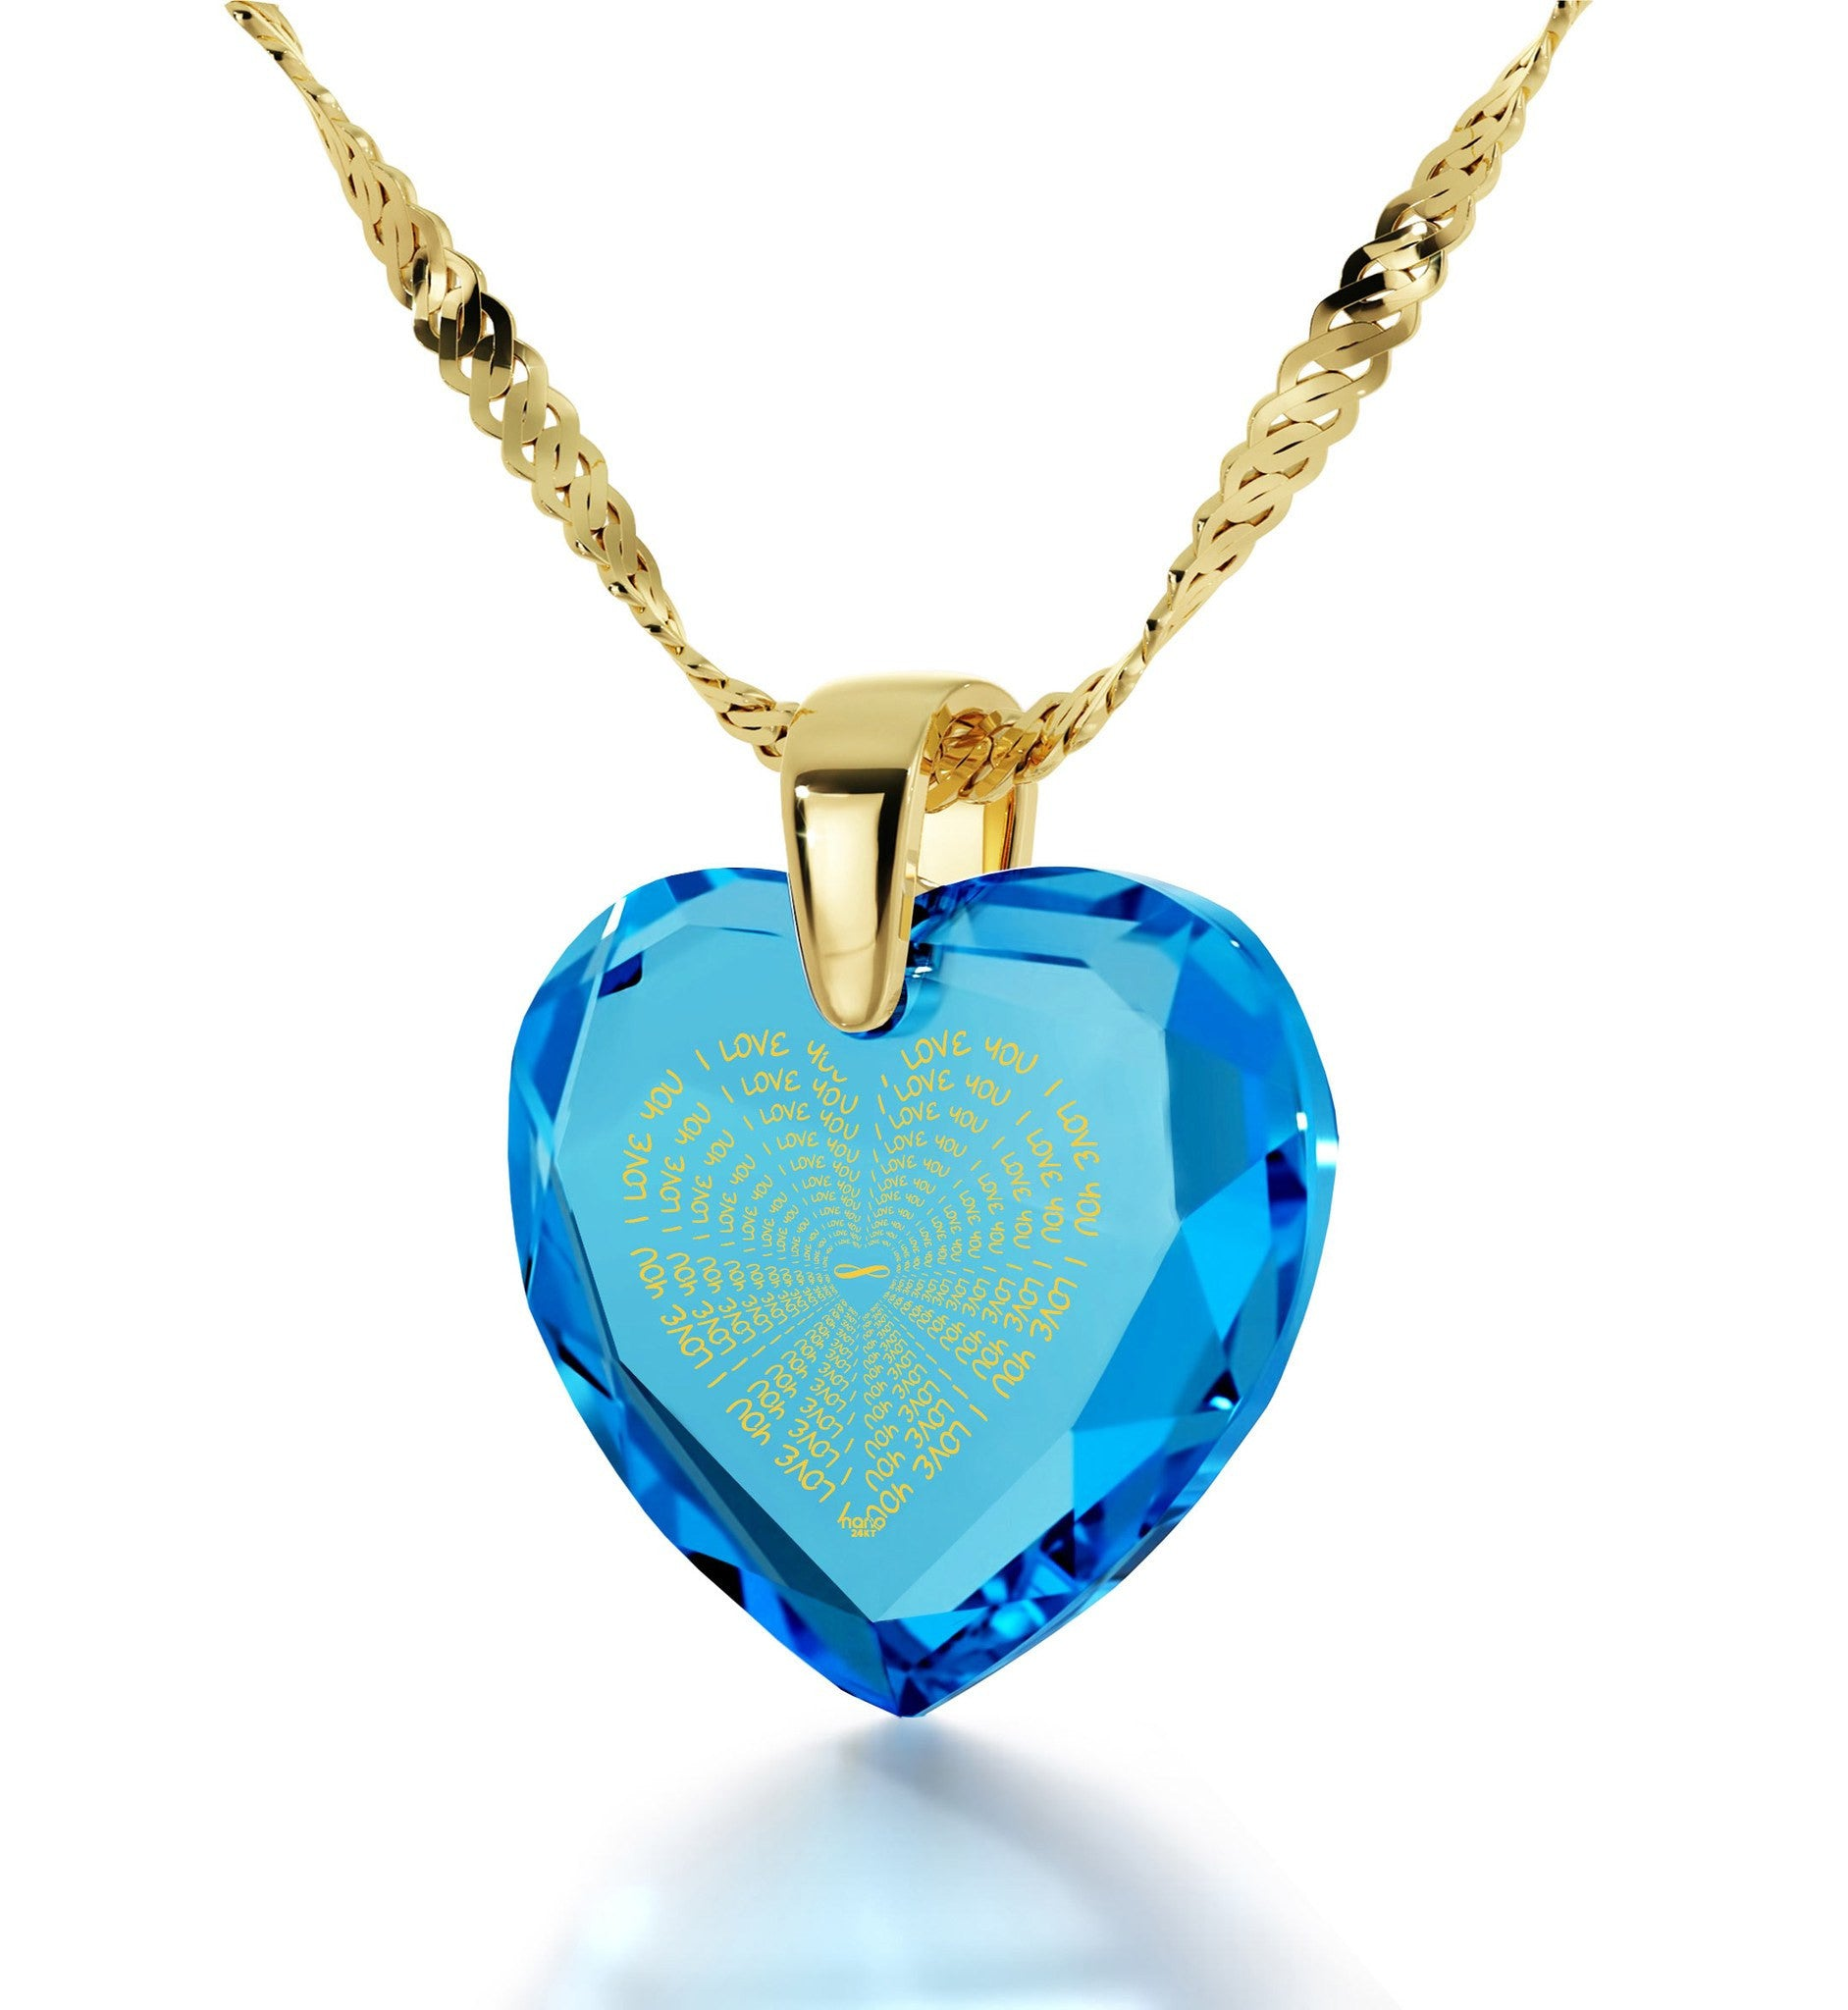 Love Necklace, Turquoise CZ Jewelry, Christmas Gift for Her, by Nano Jewelry